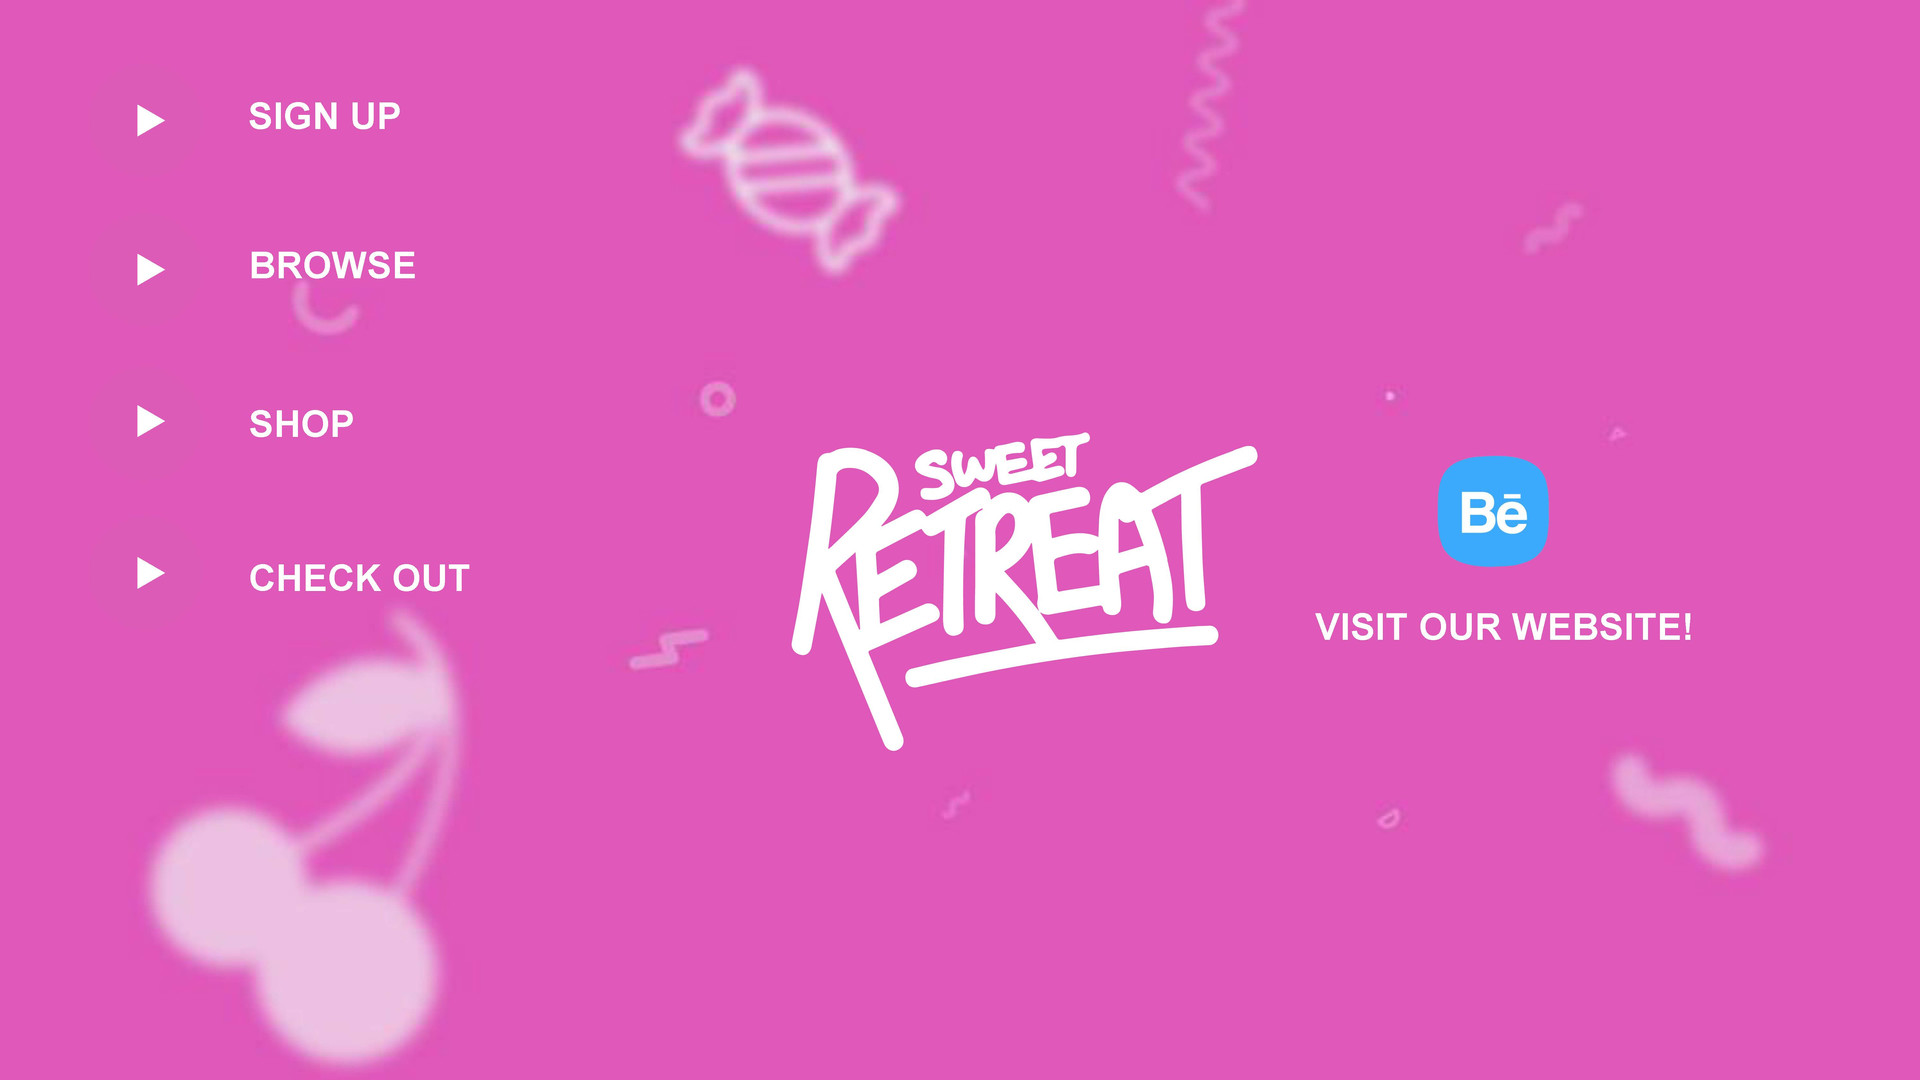 Original Slide Deck - Sweet Retreat_Page